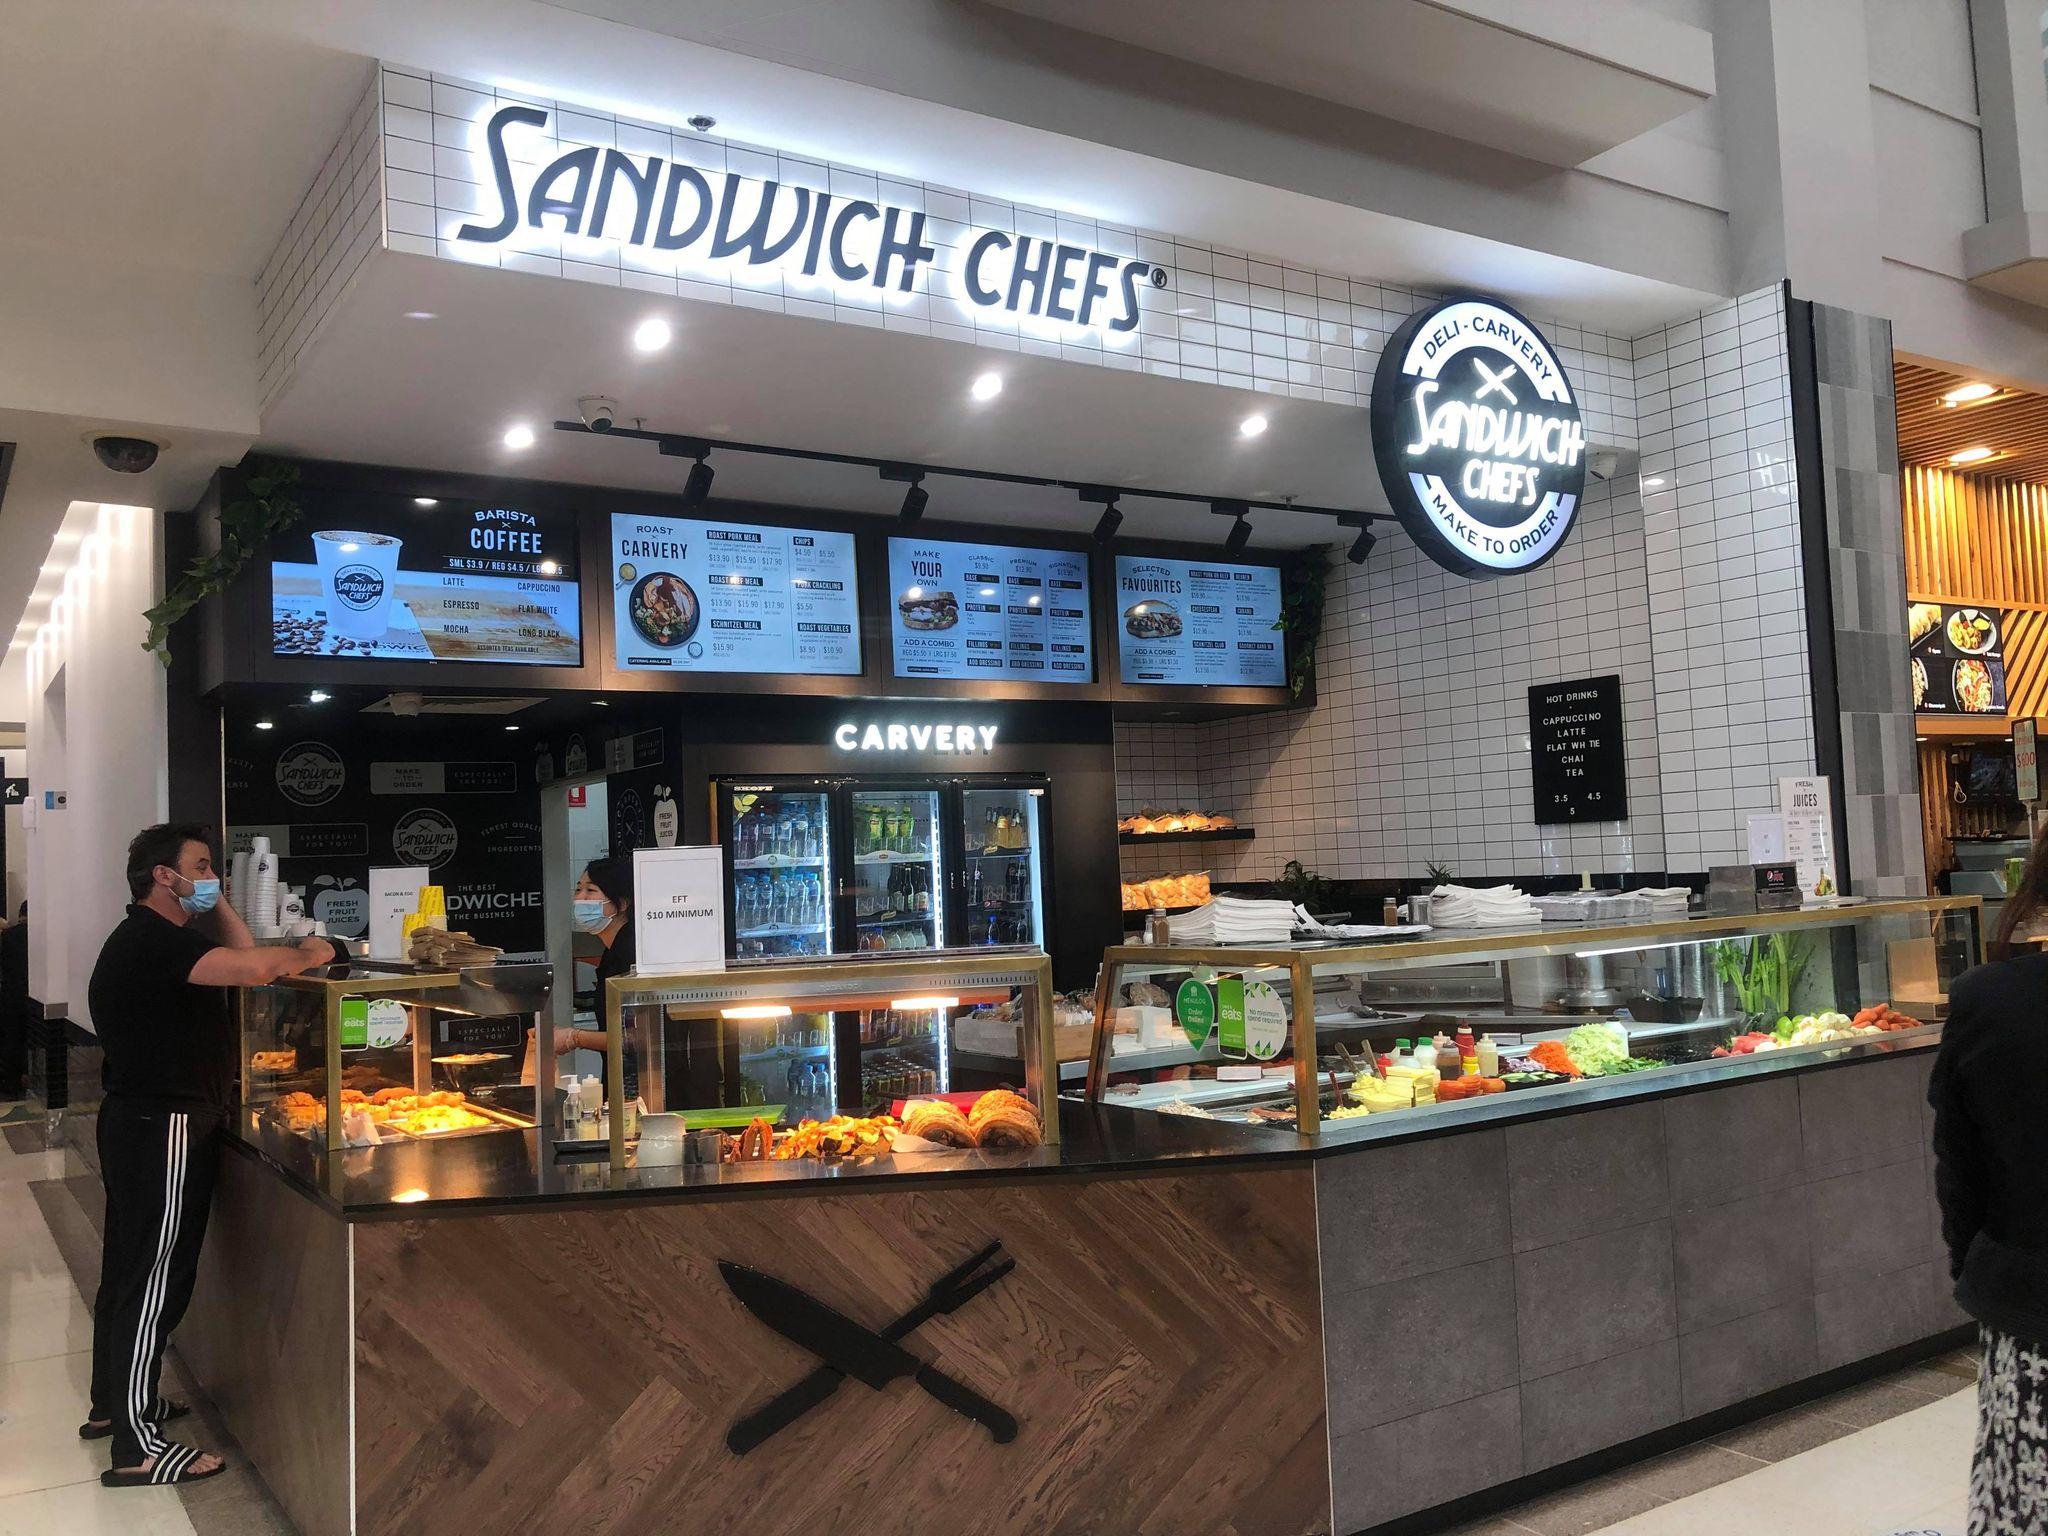 pacific werribee december 2020 sandwich chefs